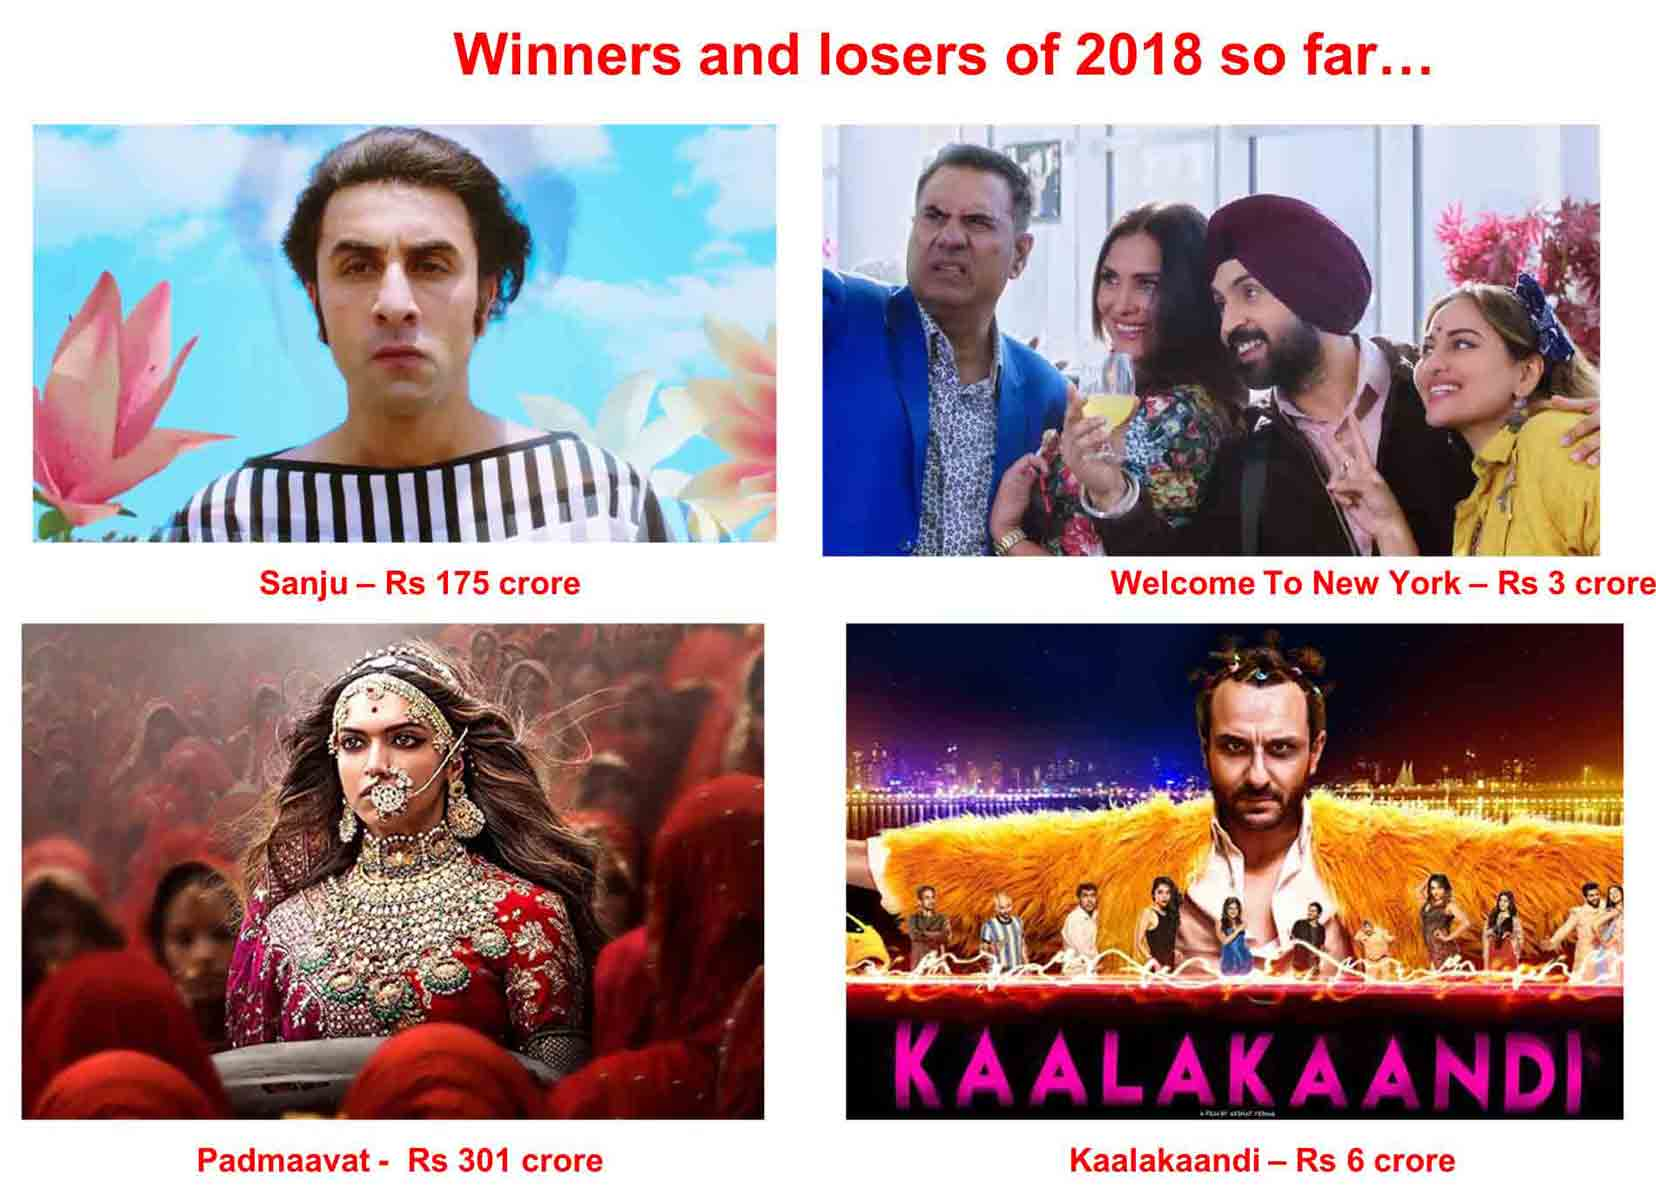 Winners and losers of 2018